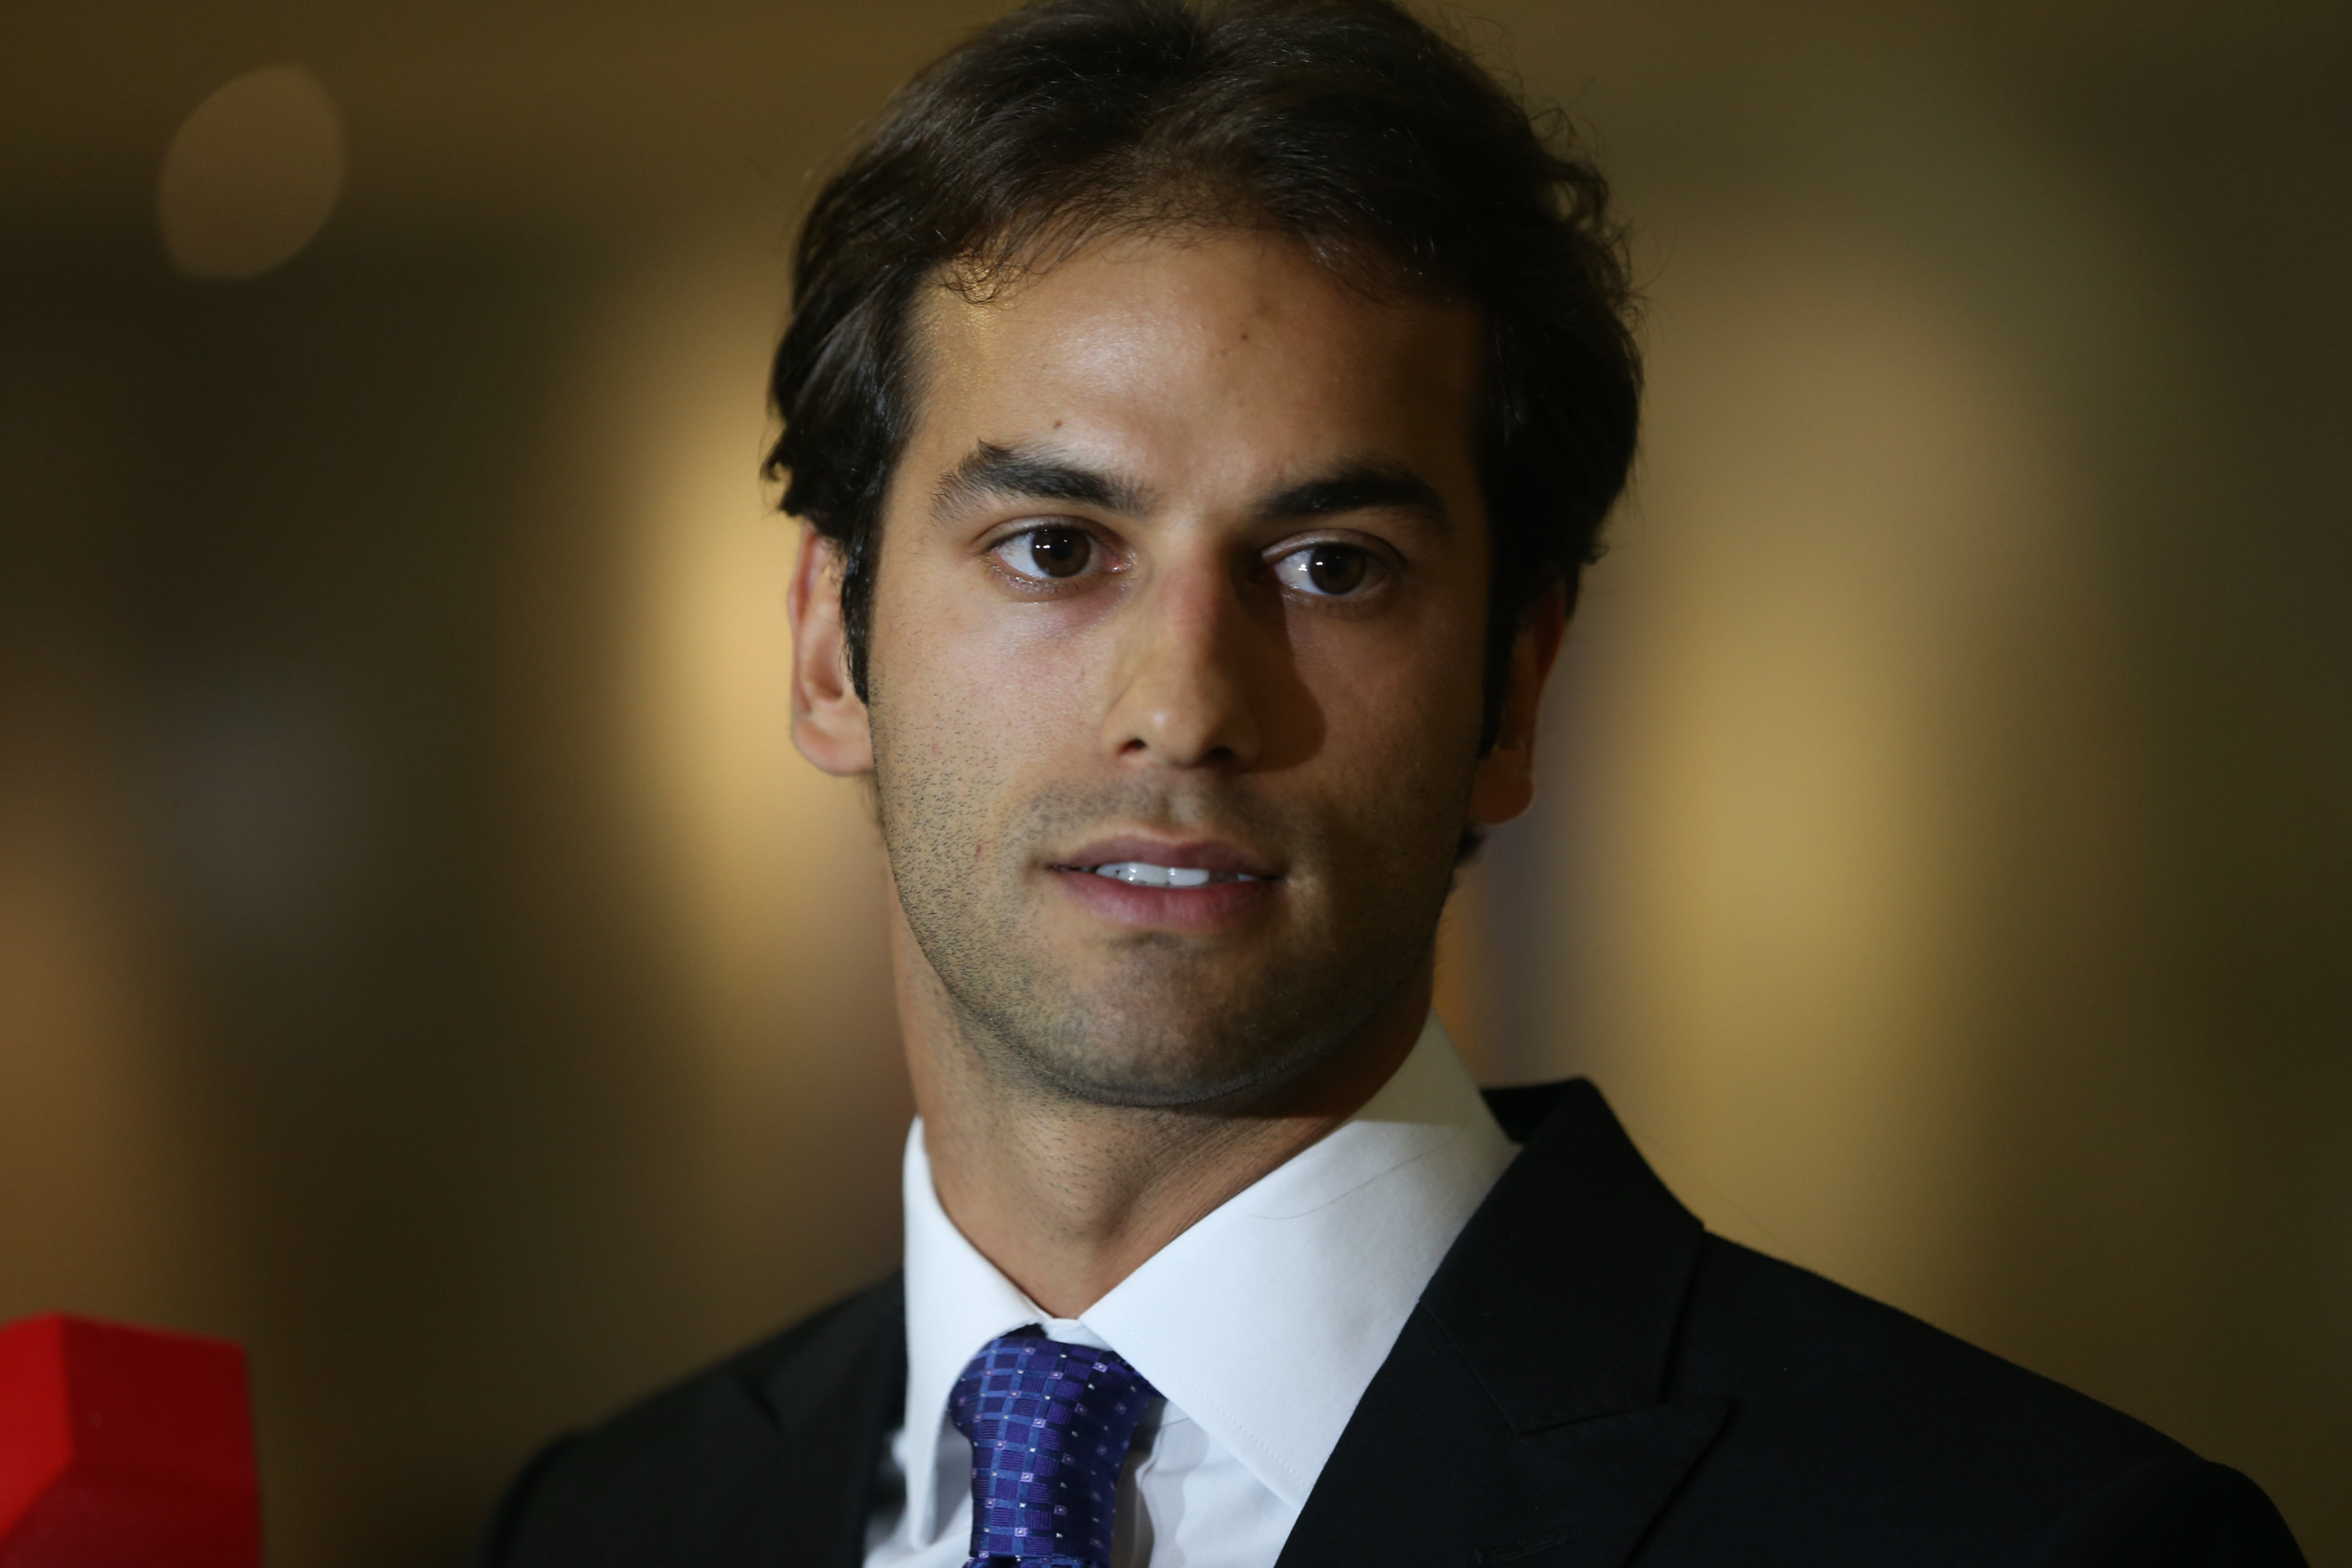 The 26-year old son of father Felipe and mother Olivia Felipe Nasr in 2018 photo. Felipe Nasr earned a  million dollar salary - leaving the net worth at  million in 2018